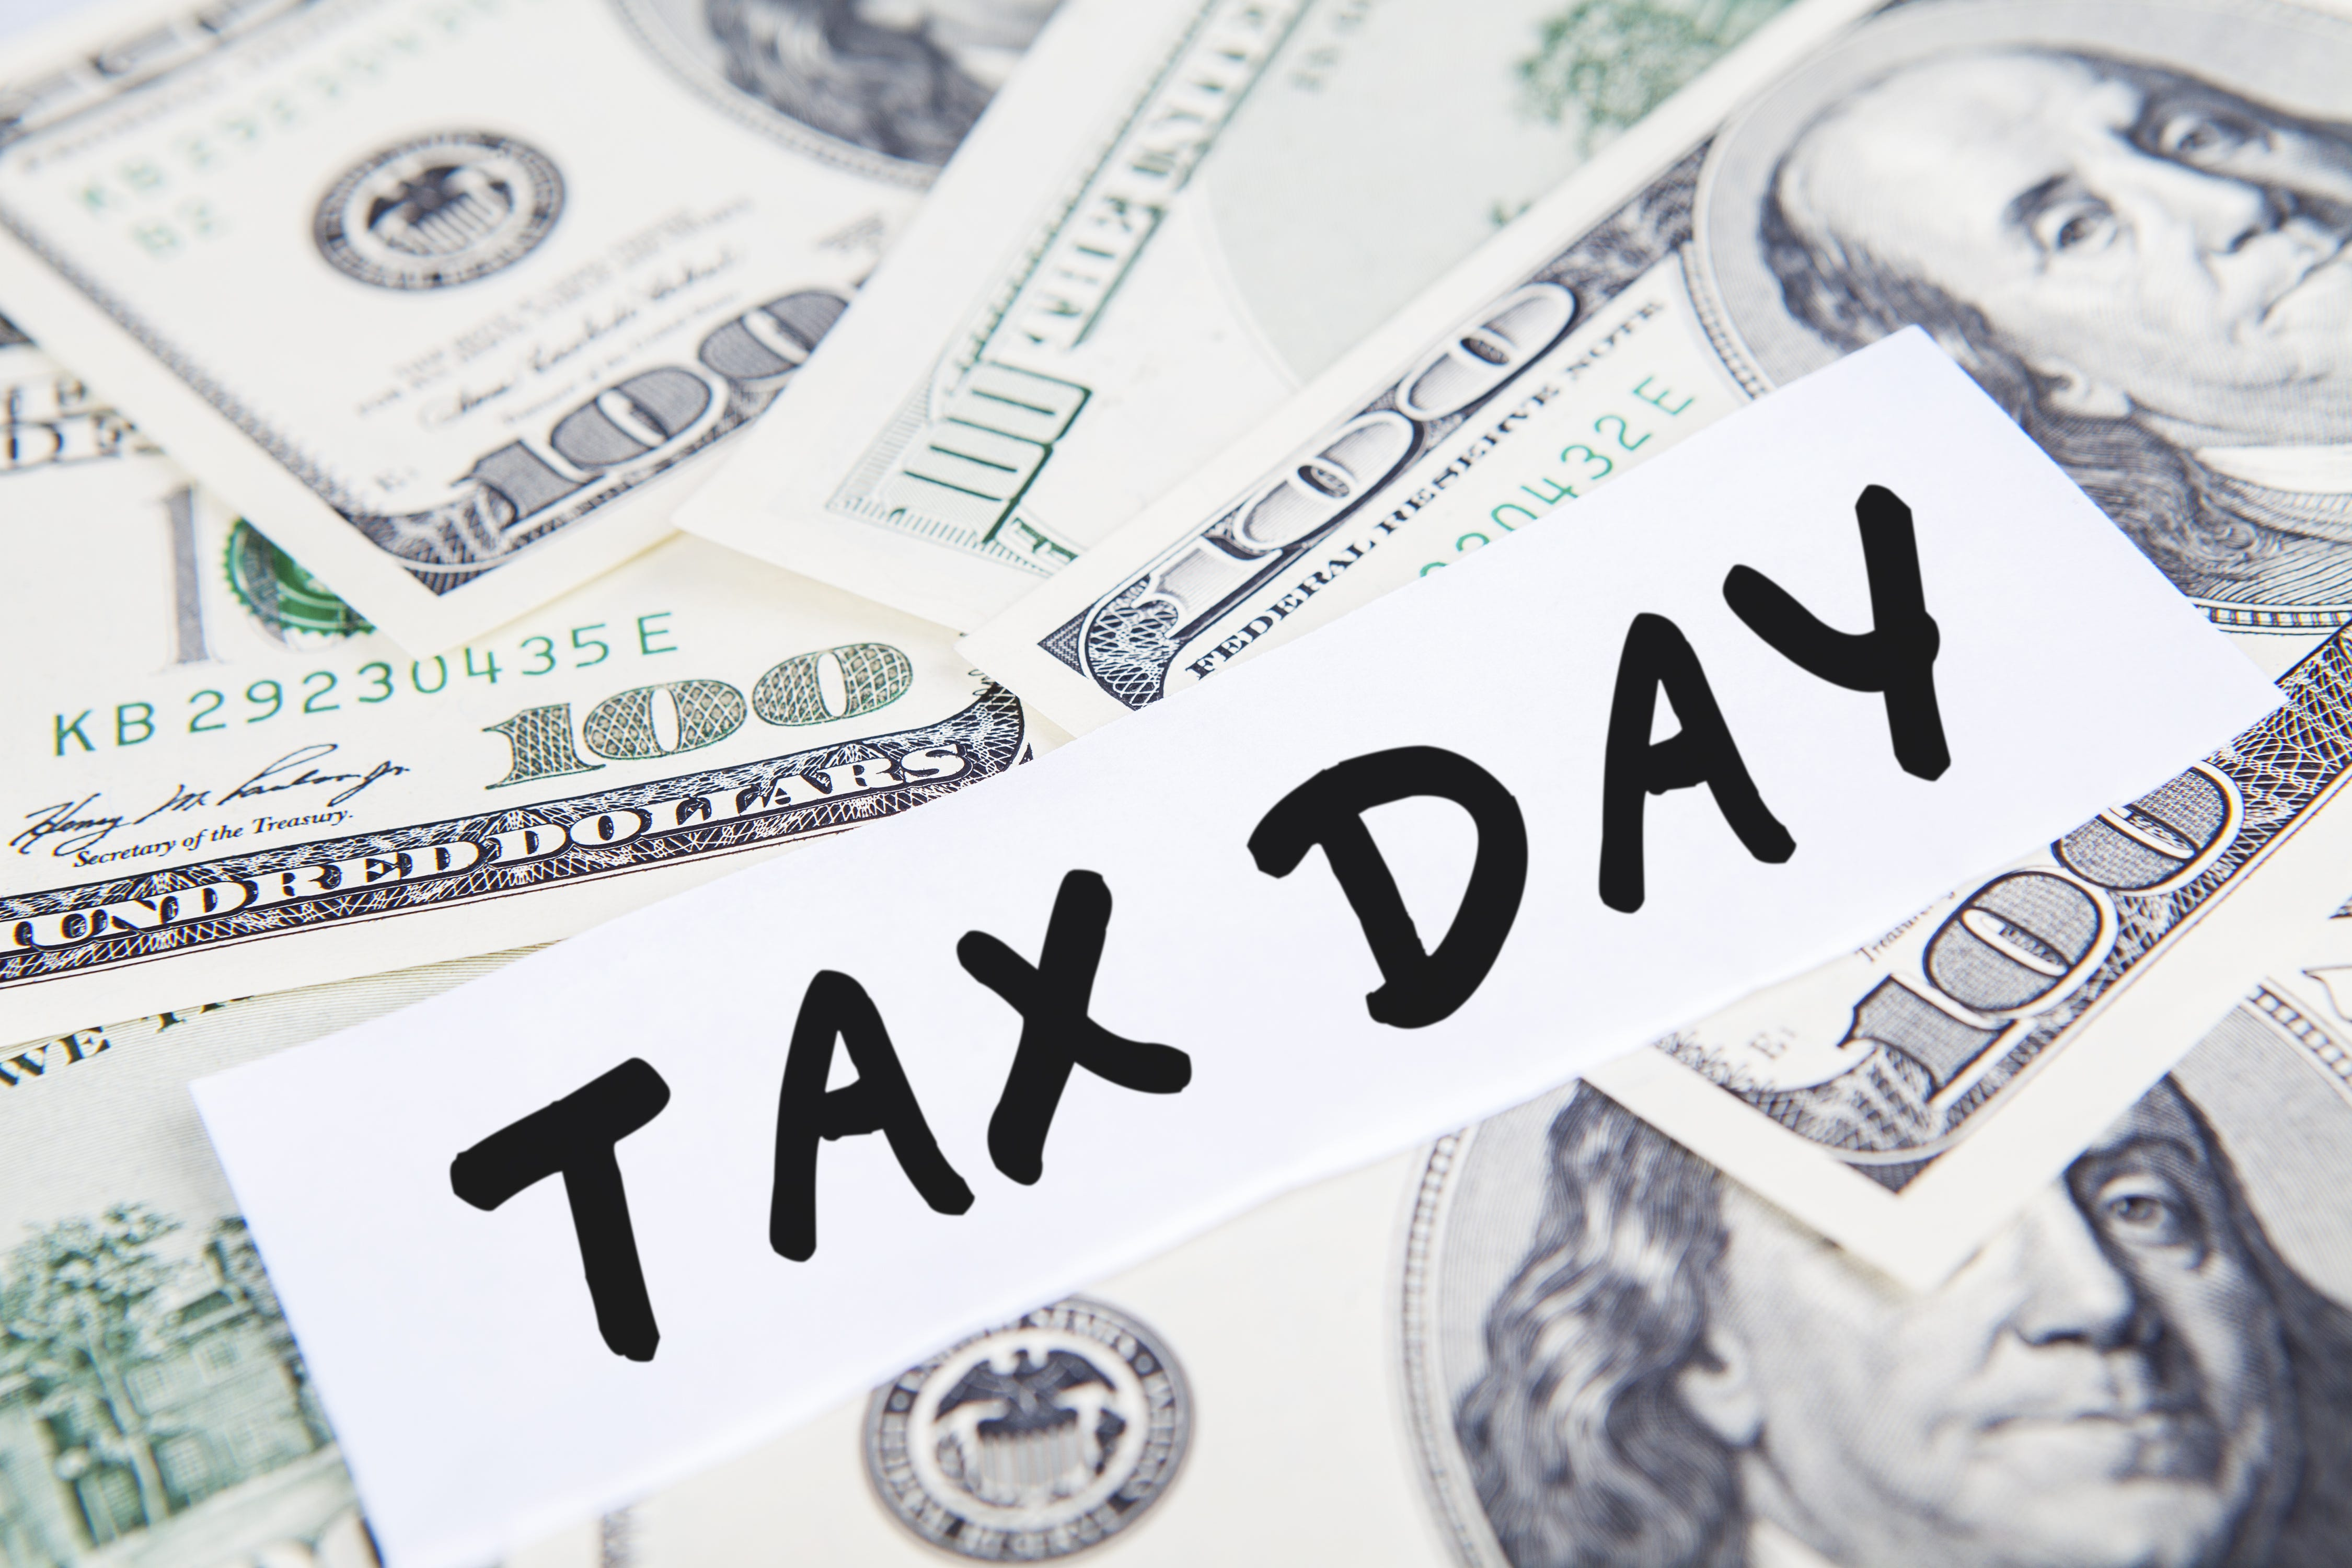 Tax Day is on April 18 this year, not April 15